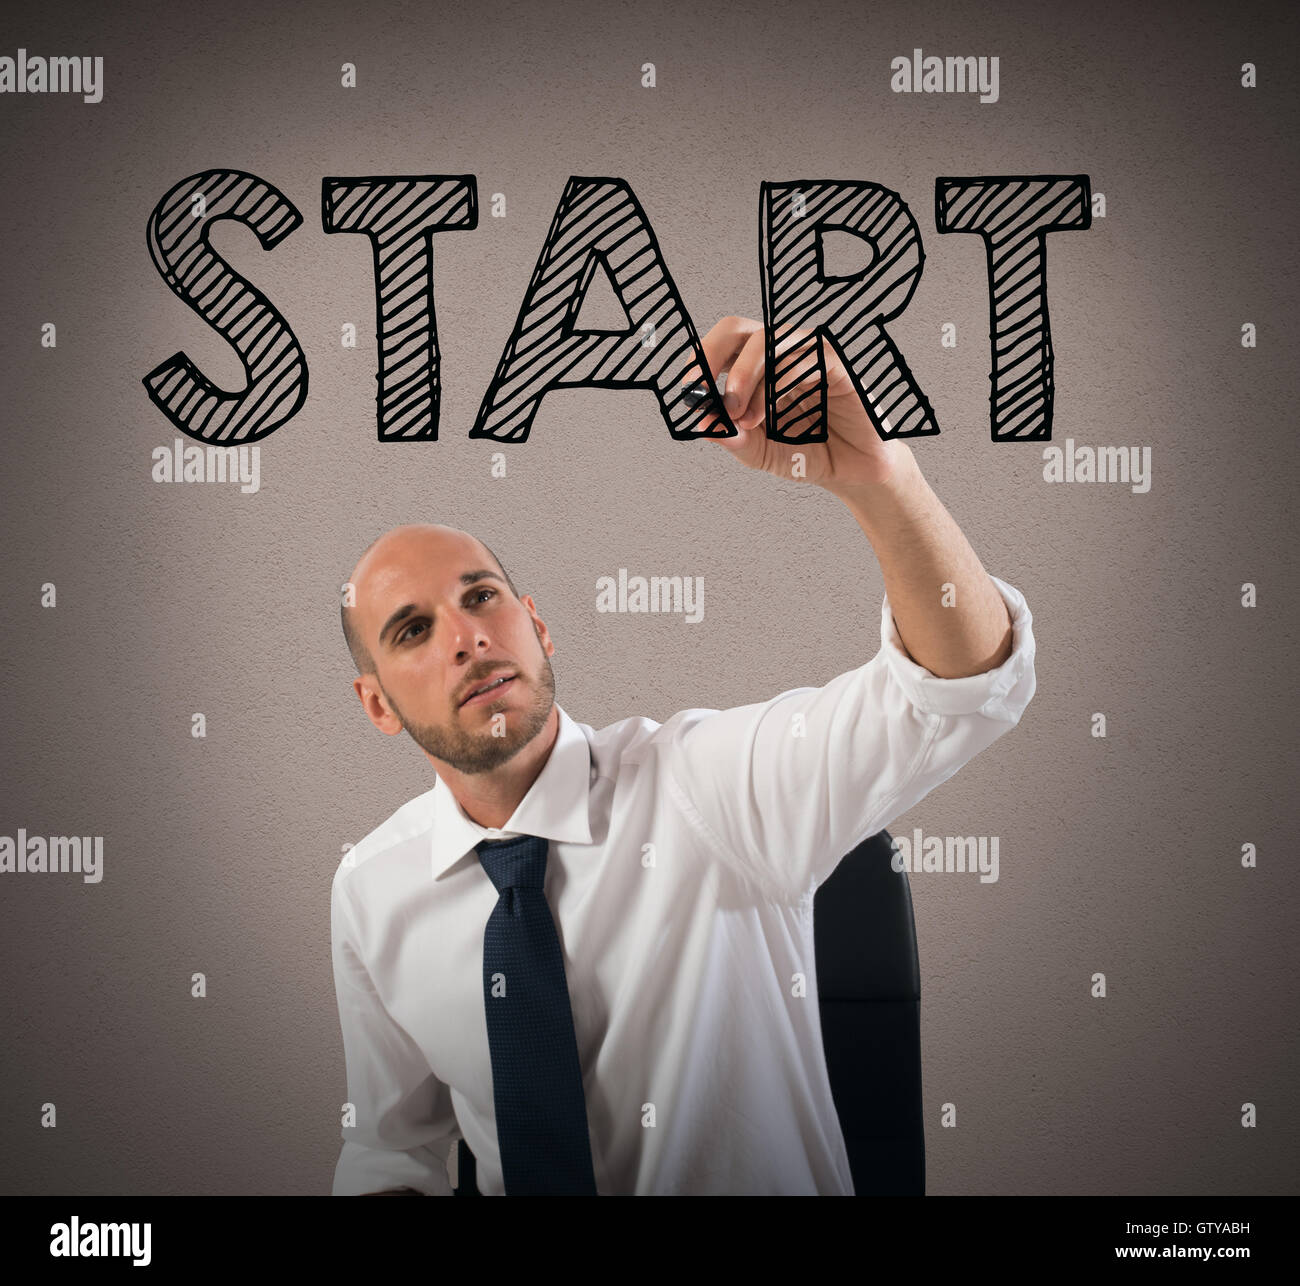 Start a business sucessful career - Stock Image